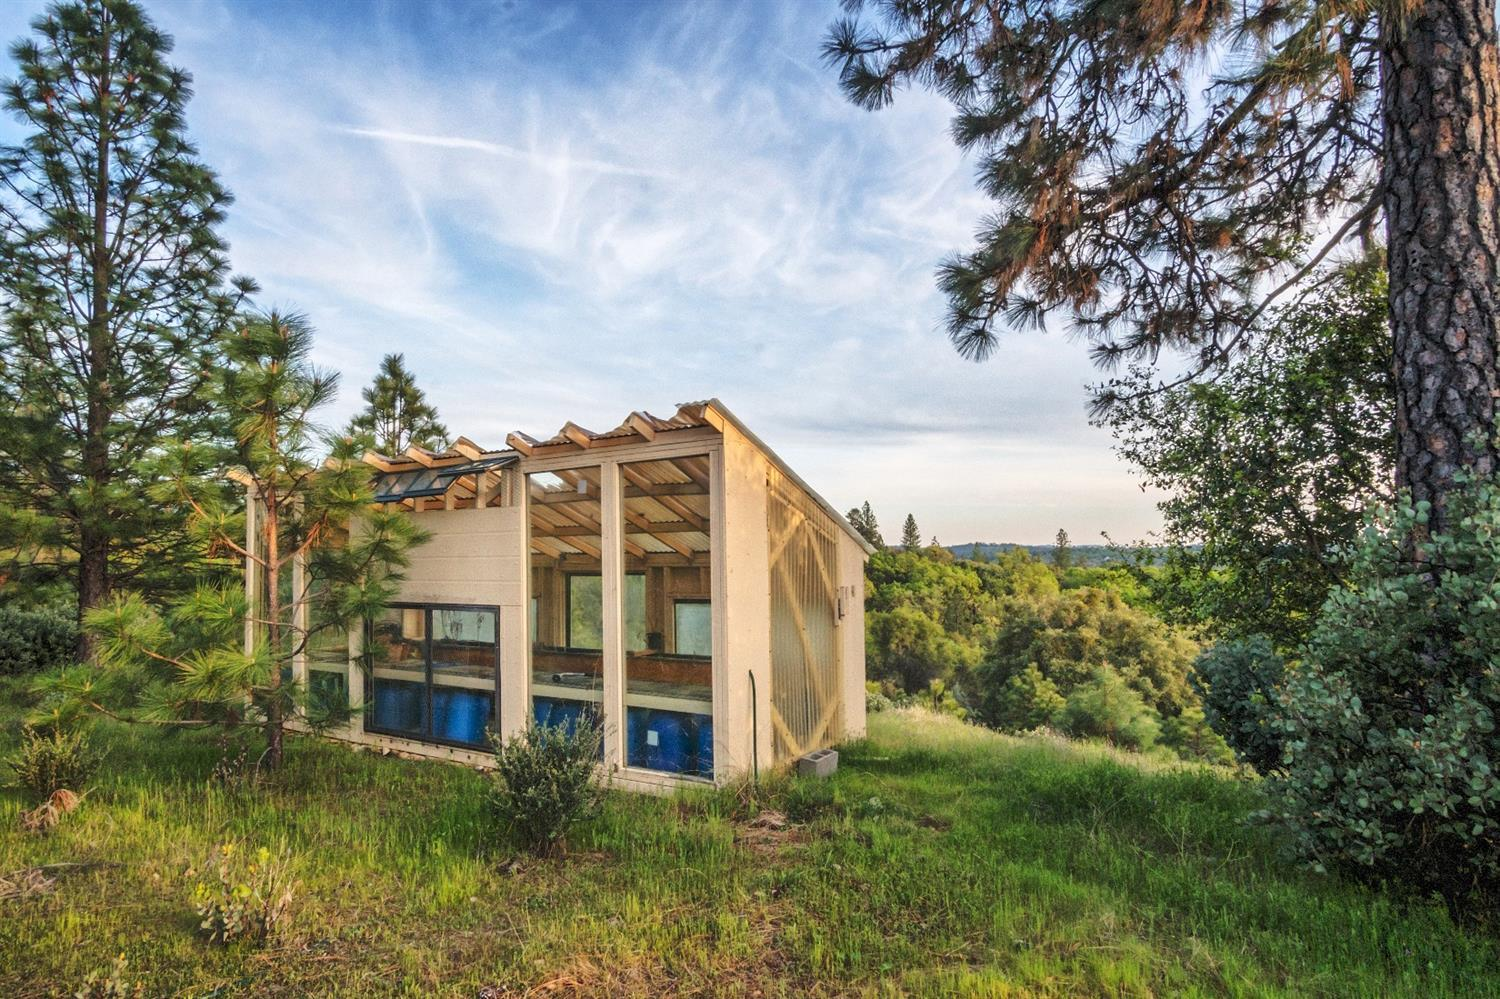 listing 5970 garden valley road garden valley ca mls 18024253 mary buck premier foothill properties inc cool ca real estate call me at - Garden Valley Ca